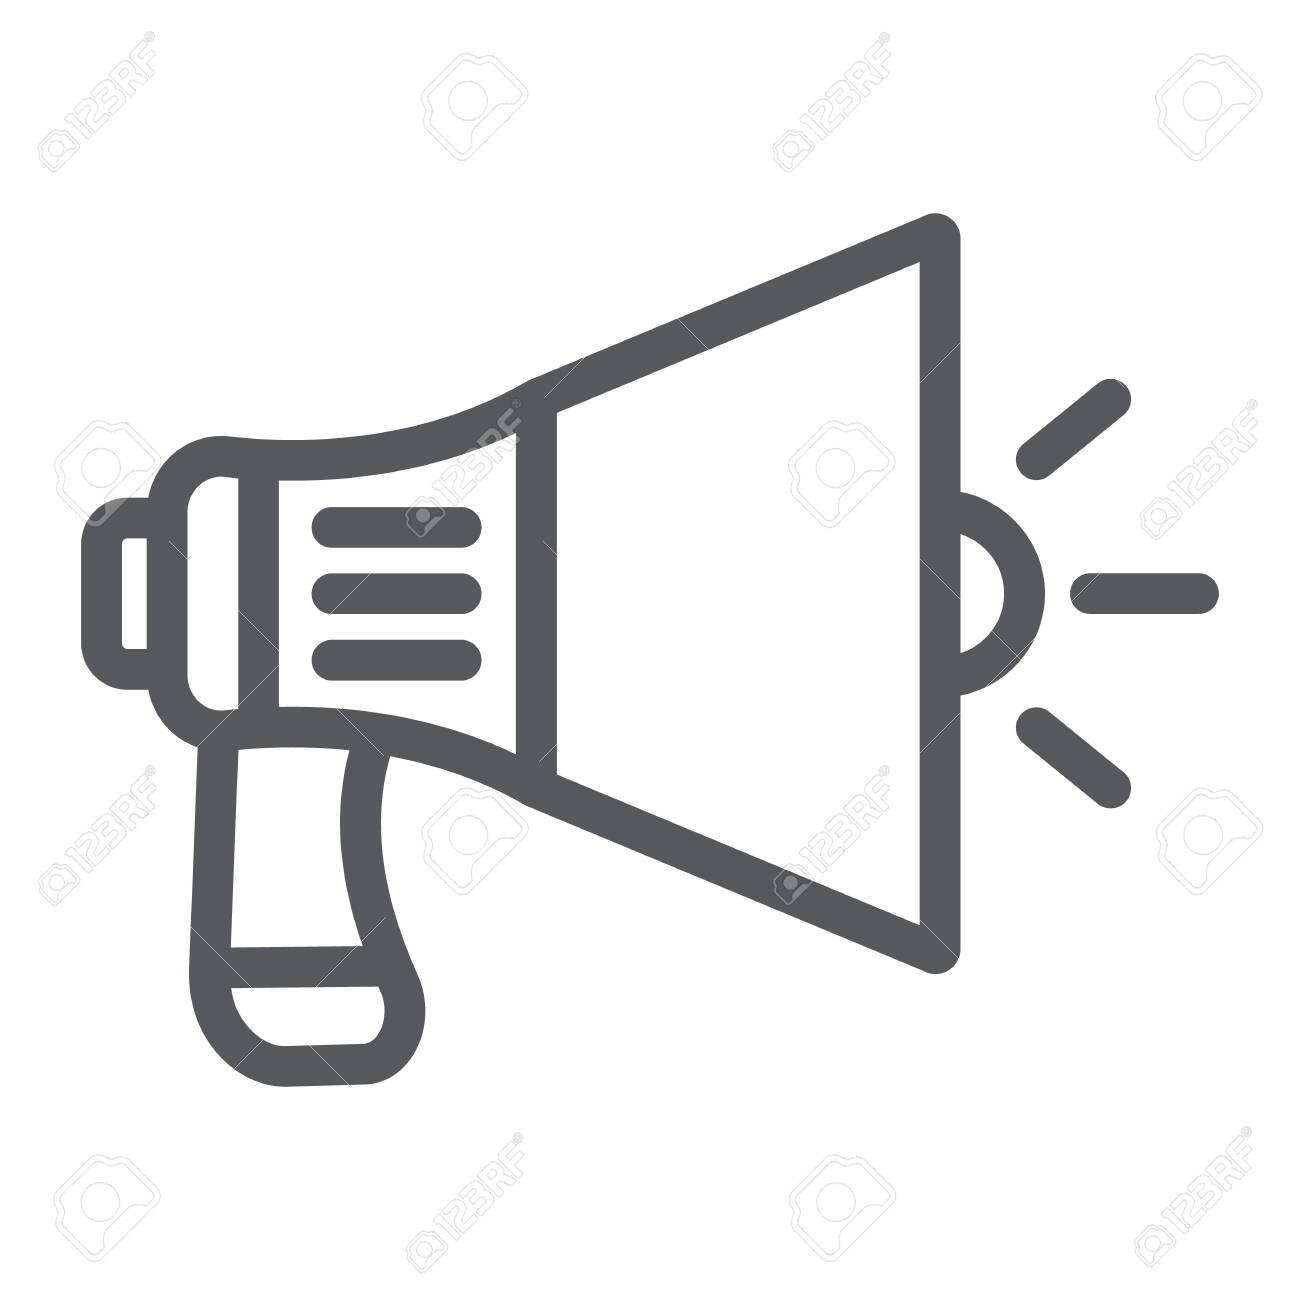 megaphone line icon announcement and speaker loudspeaker sign royalty free cliparts vectors and stock illustration image 124773590 megaphone line icon announcement and speaker loudspeaker sign